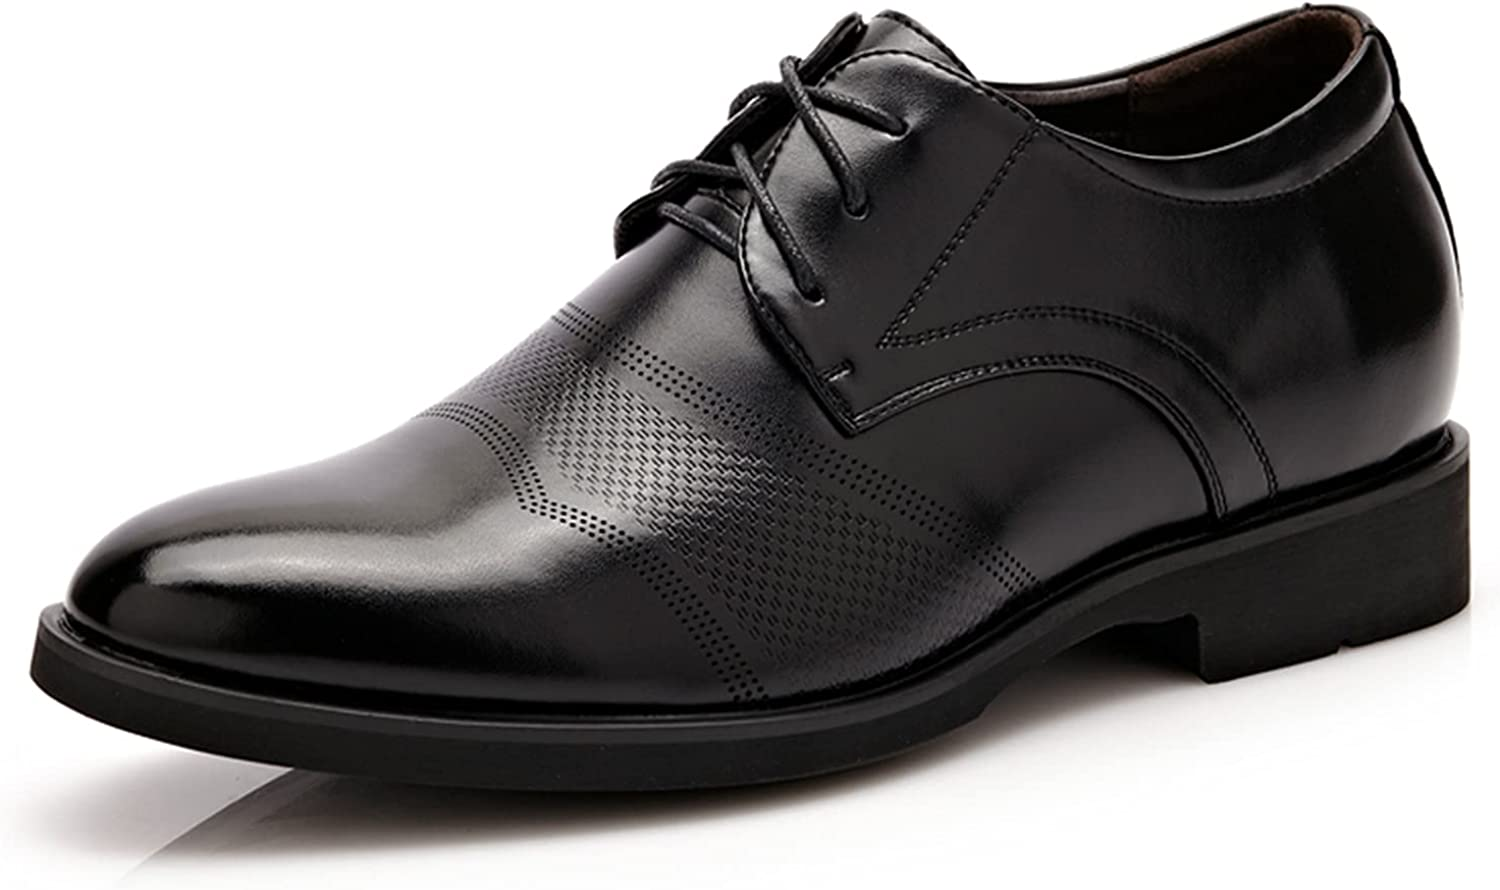 Men's Oxford Business Leather Shoes Casual Breathable Formal Leather Dress Shoes